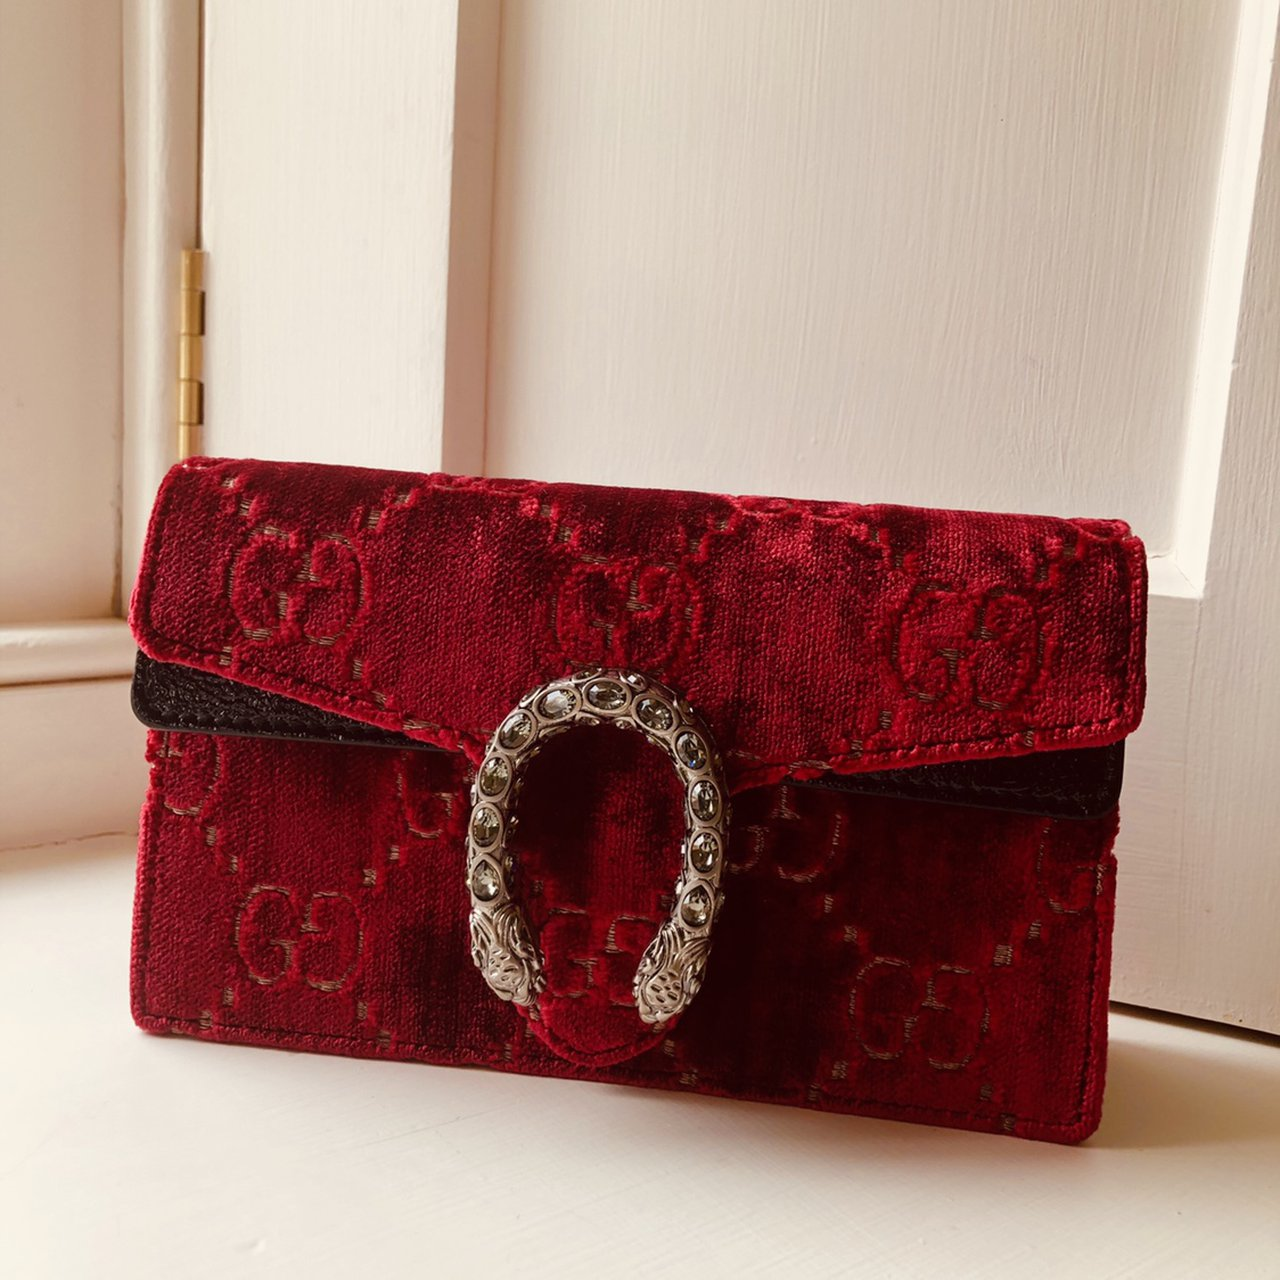 304b2161da2 @rosevc. 17 days ago. Chipping Norton, United Kingdom. Gucci GG Dionysus  velvet super mini bag